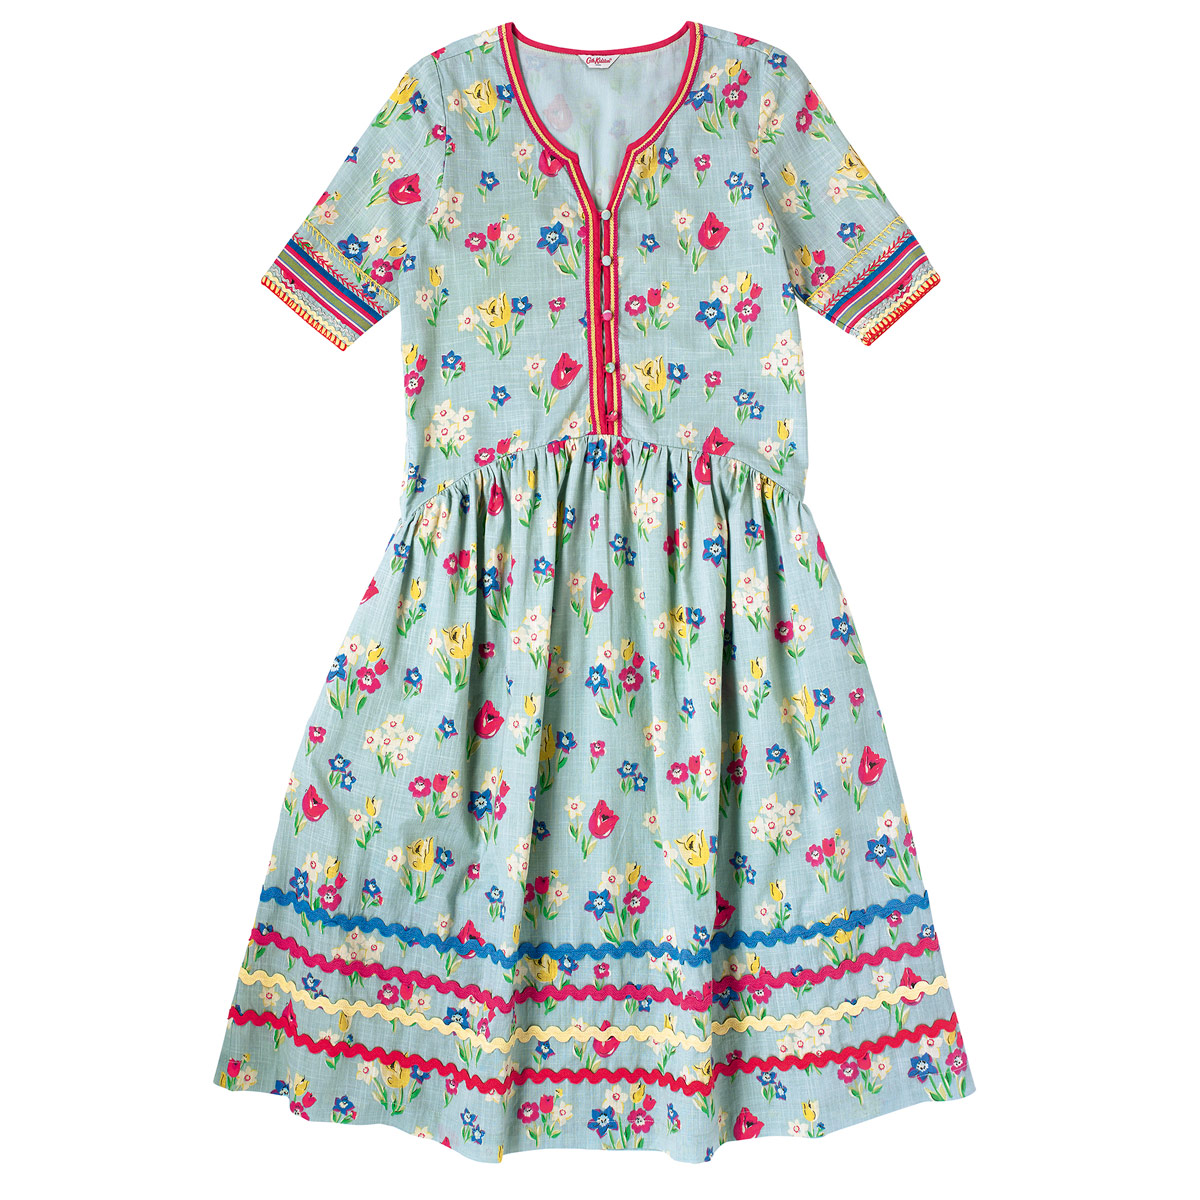 Paradise bunch button front dress, £90, Cath Kidston